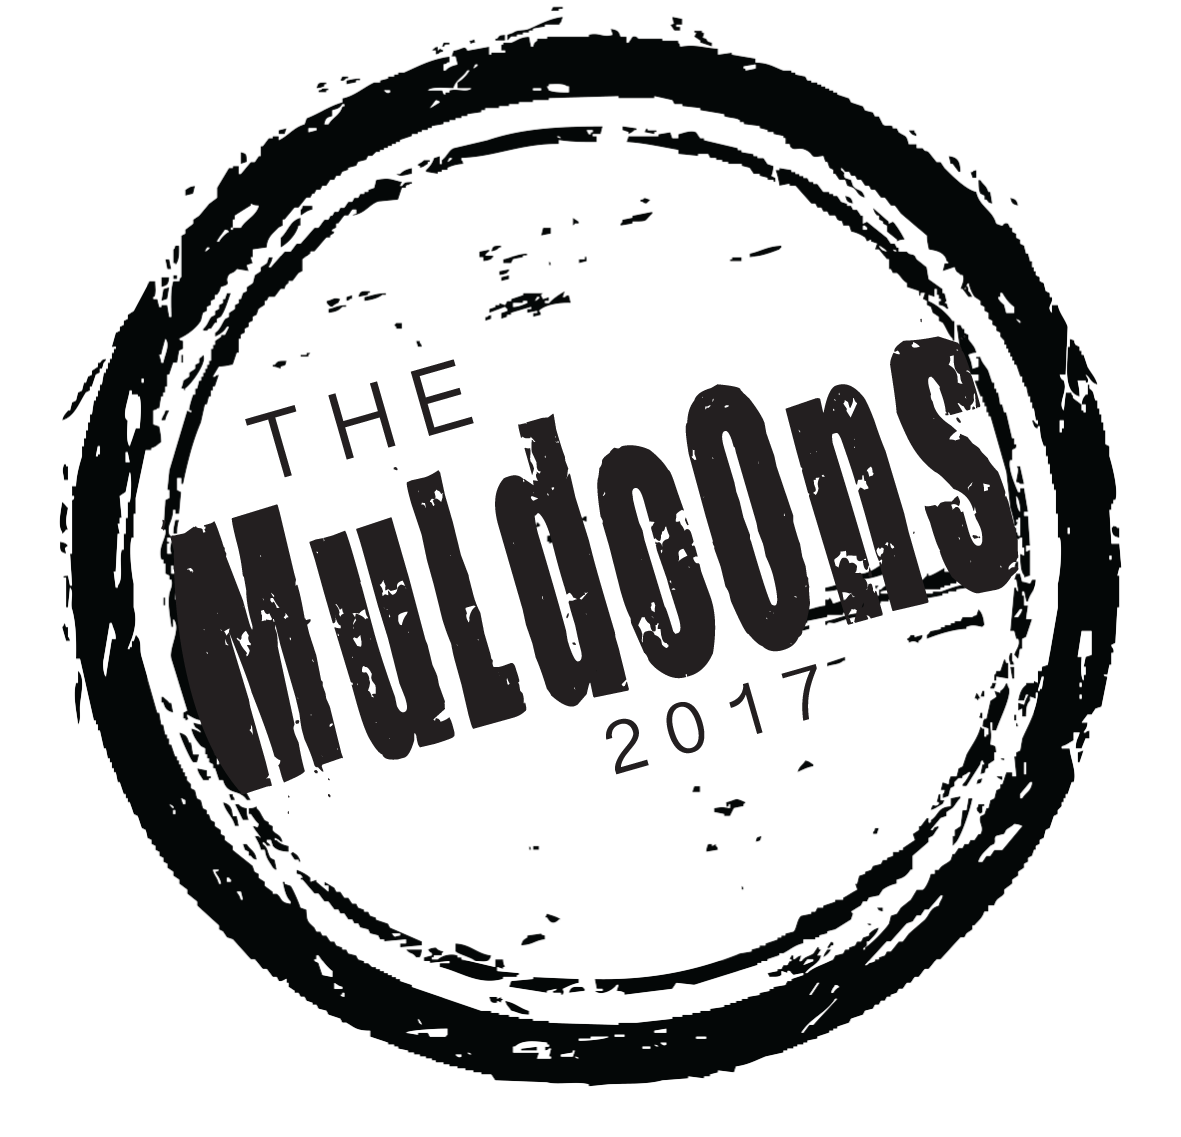 themuldoons